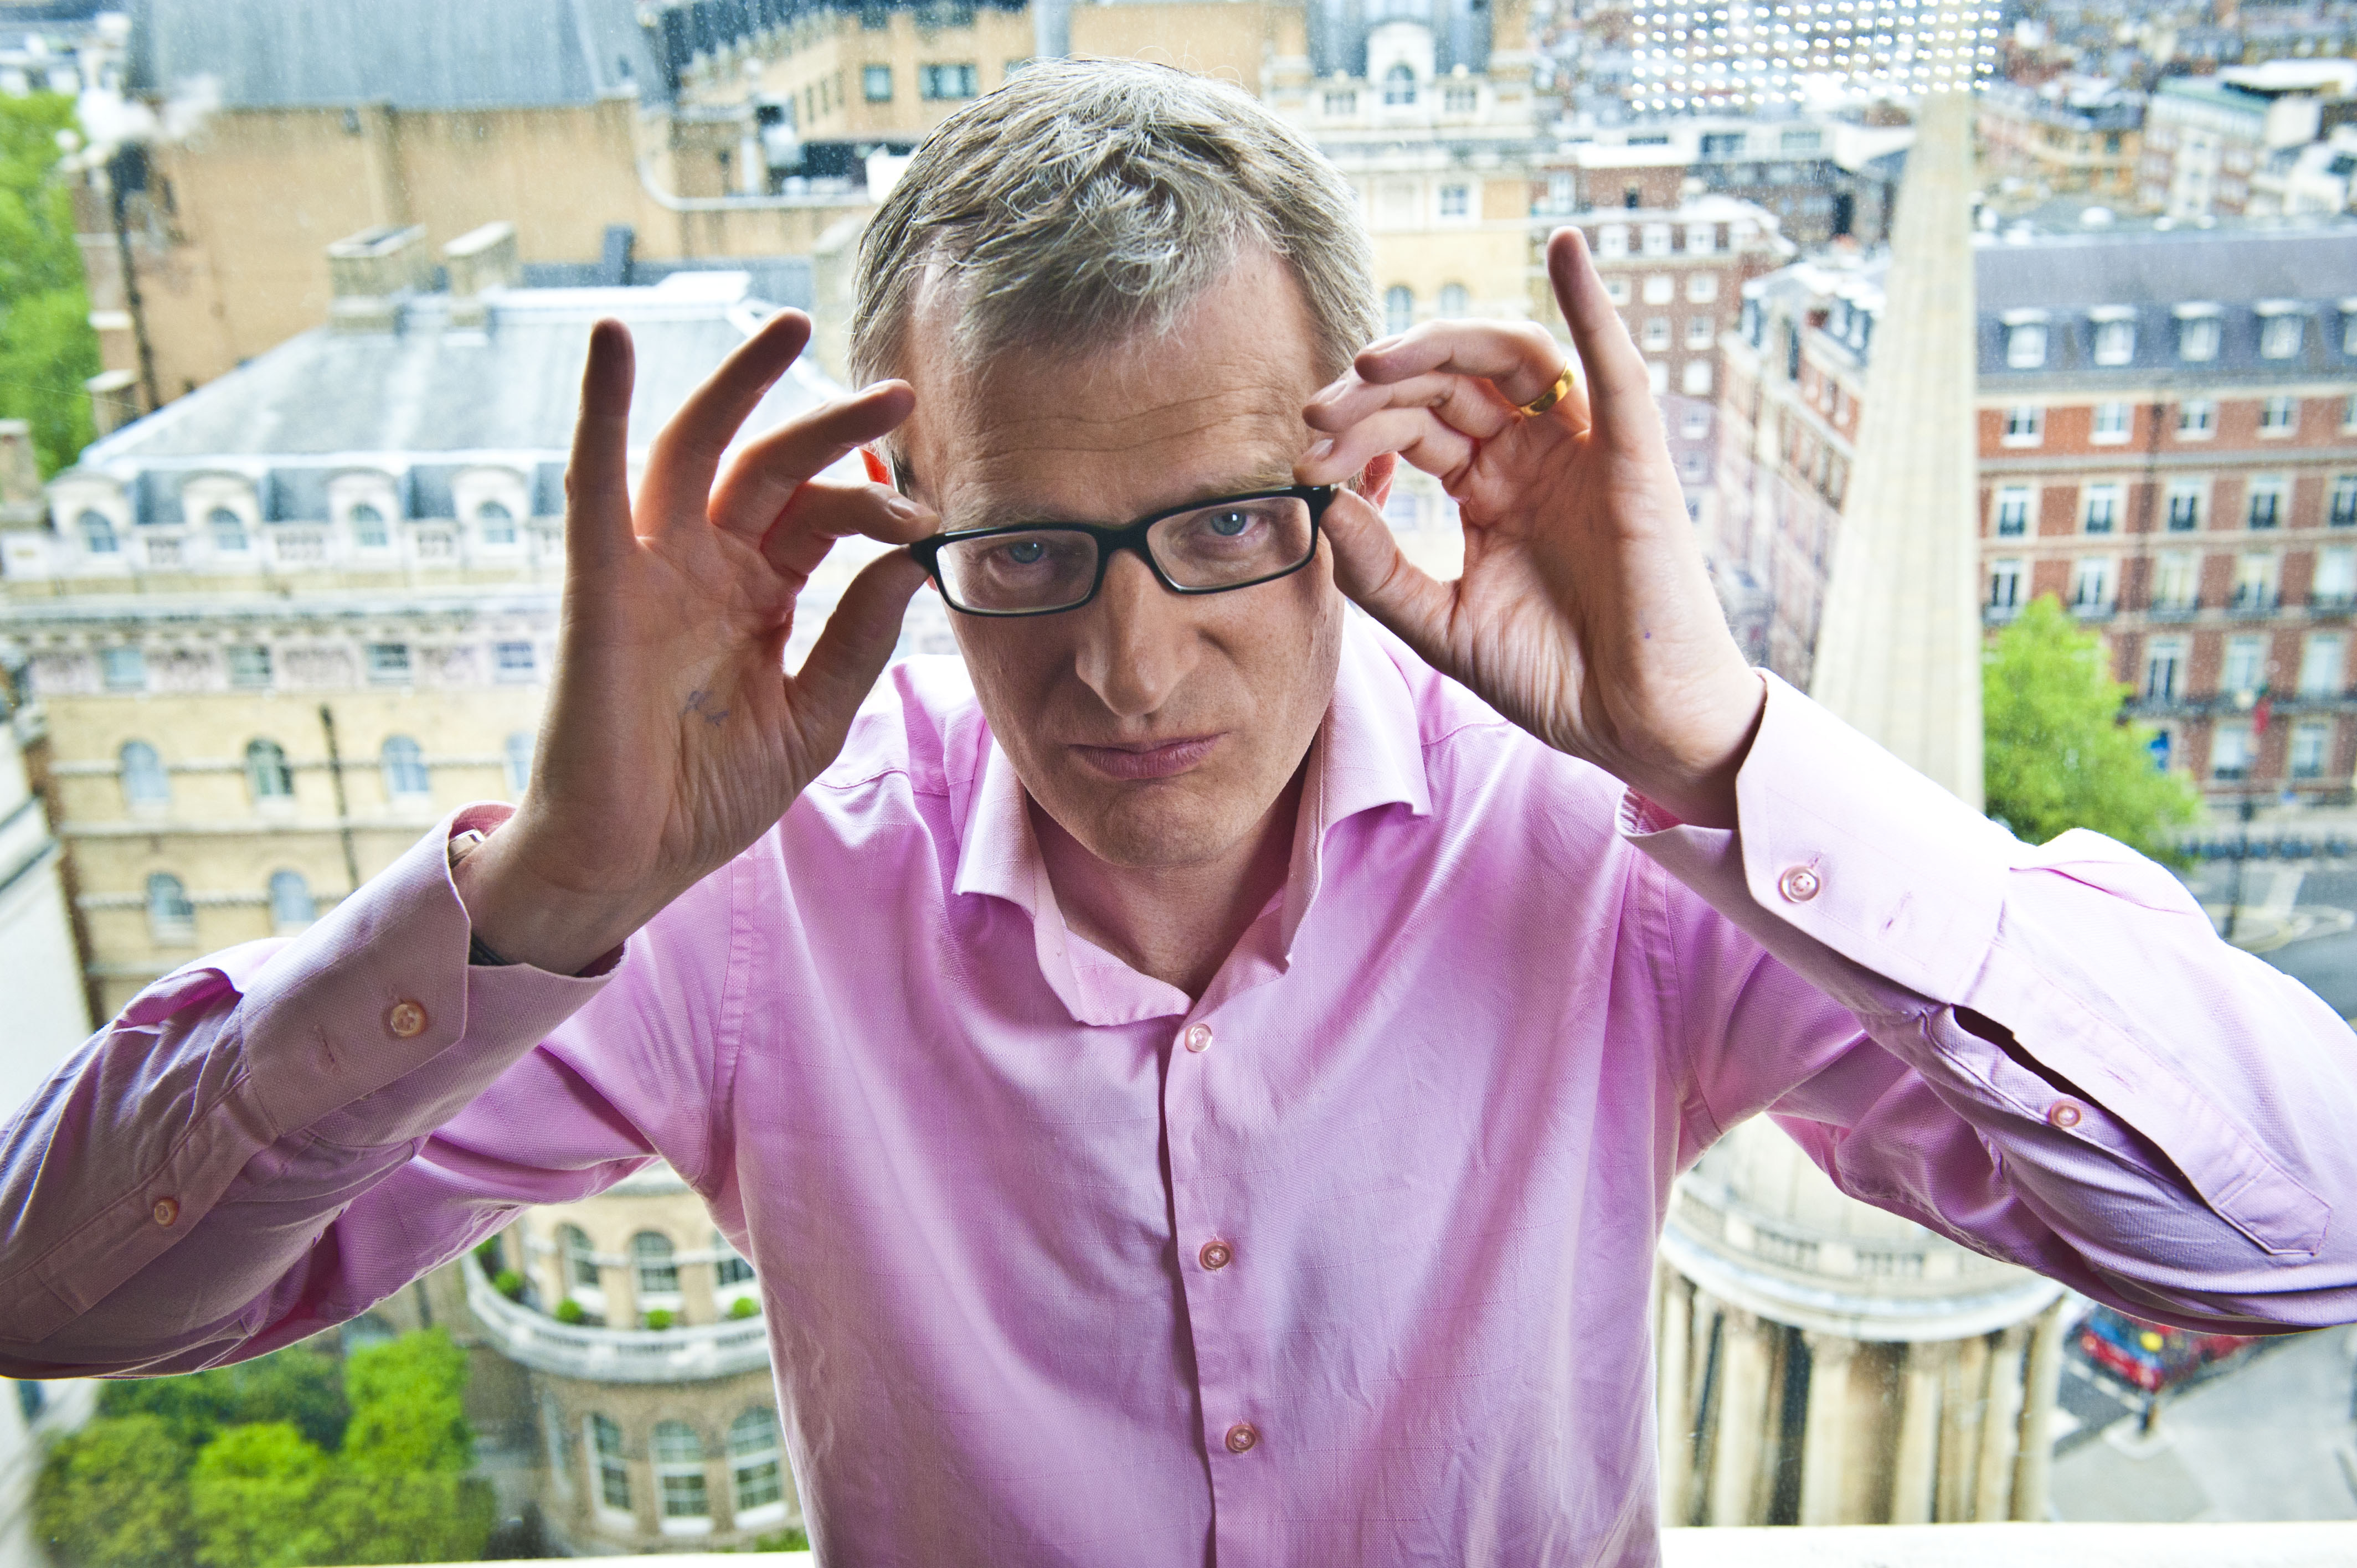 Jeremy Vine at The Heights near Broadcasting House